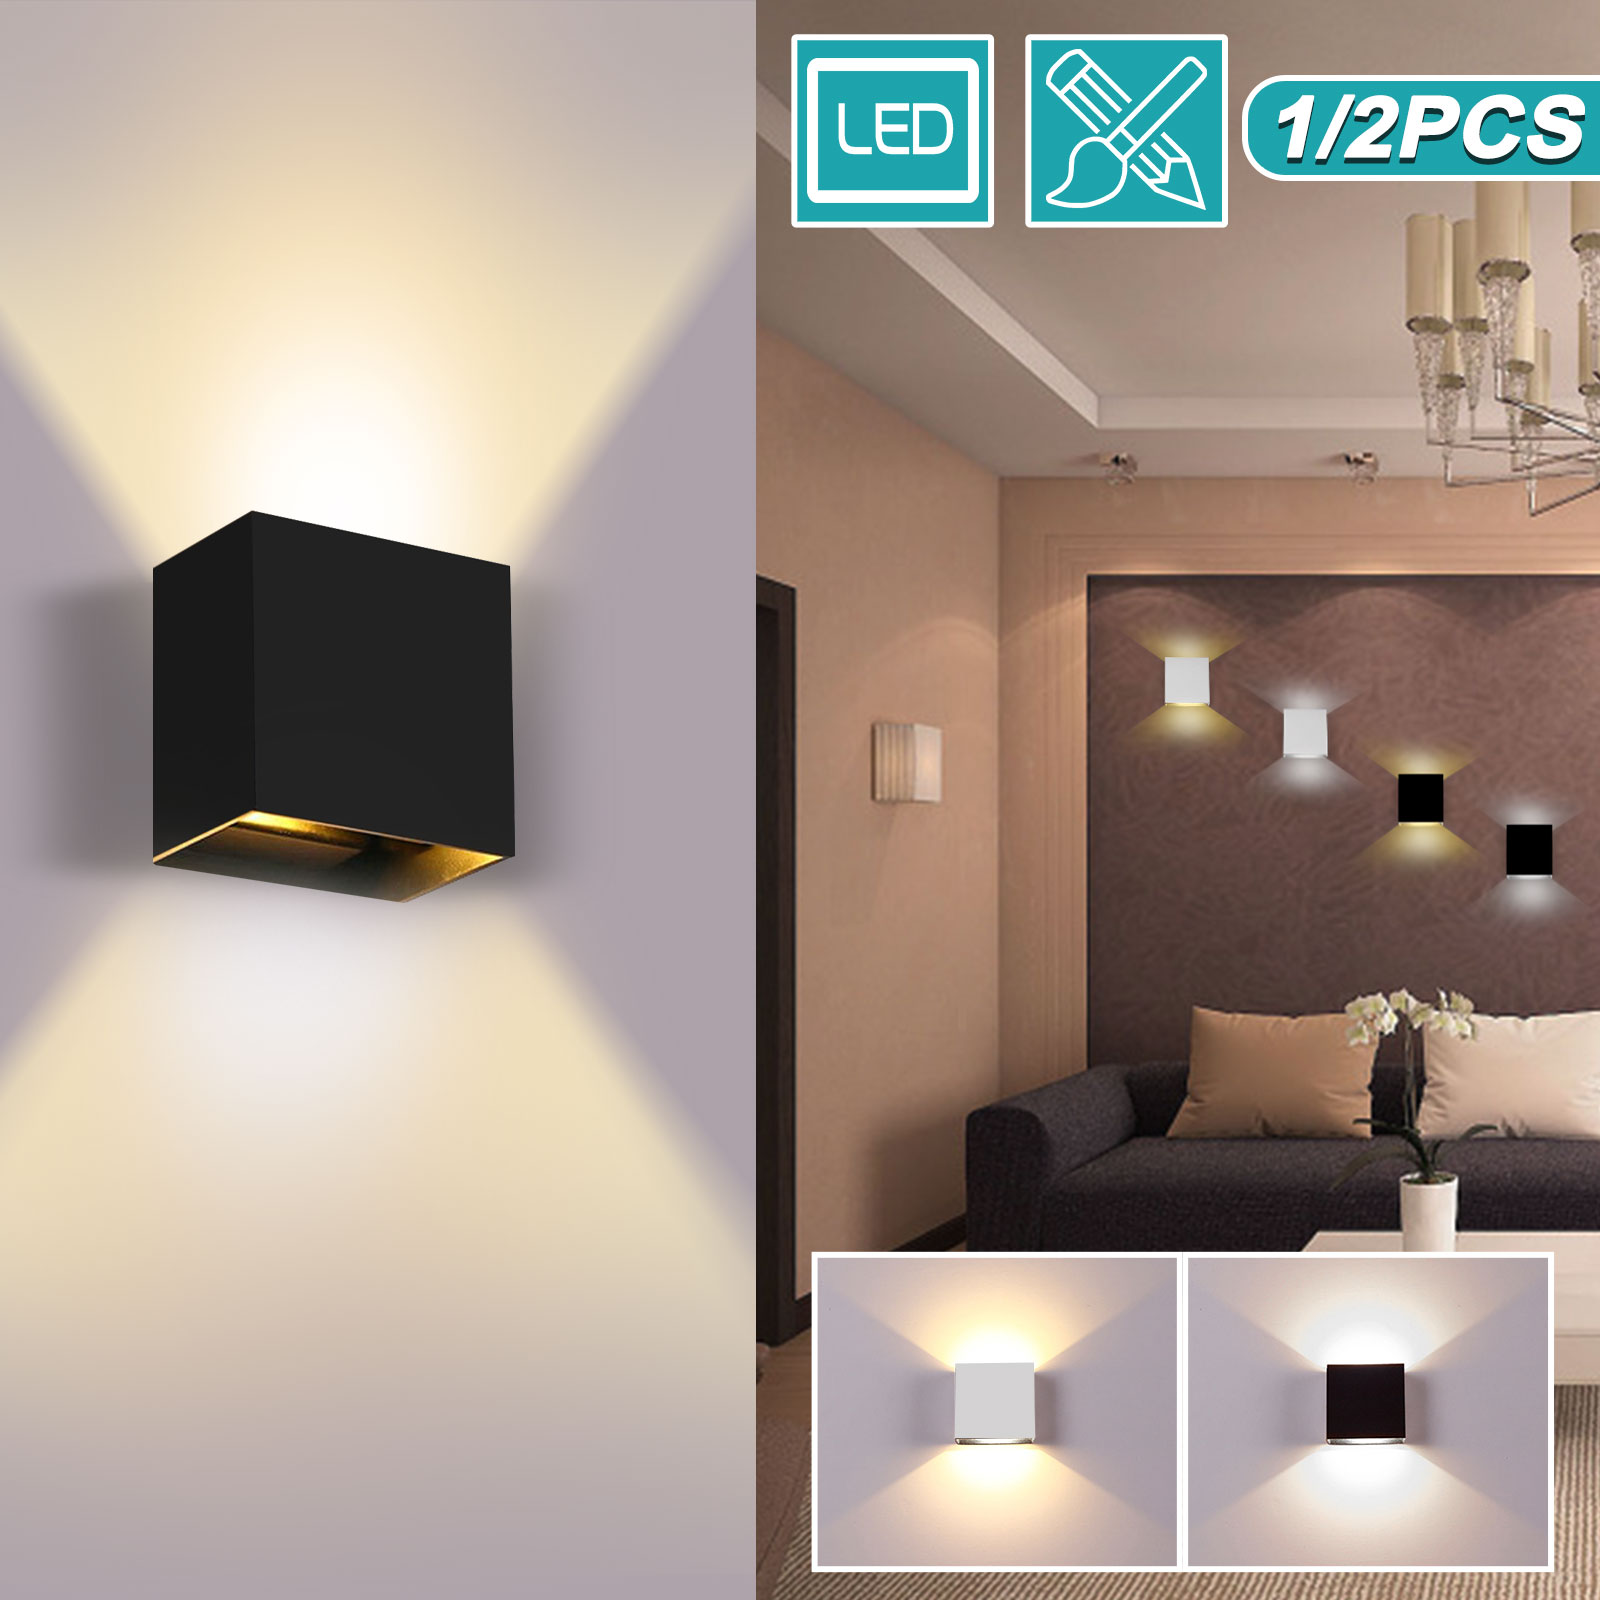 Cube LED Wall Lights Modern Up Down Sconce Lighting Fixture